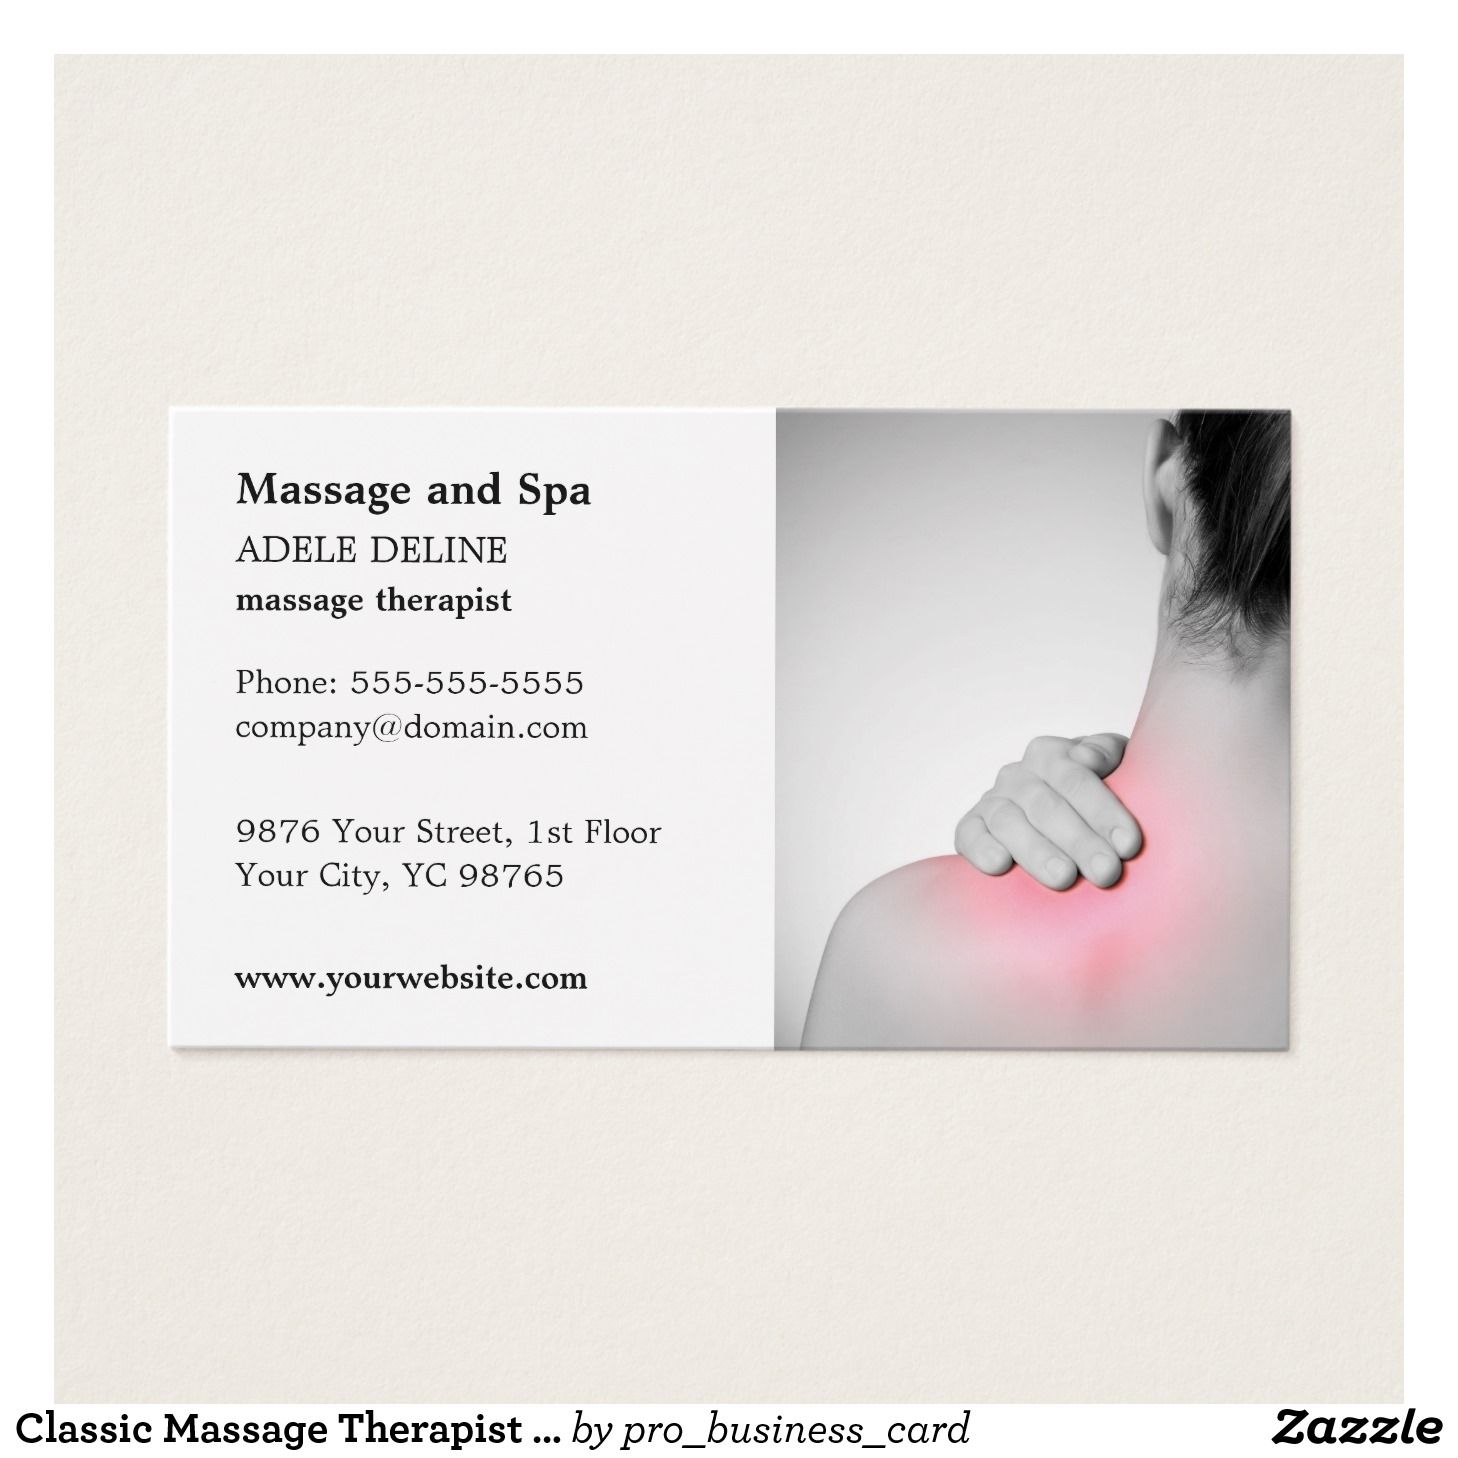 Classic Massage Therapist Business Card Template Zazzle Com Massage Therapy Business Cards Massage Therapy Business Massage Therapy